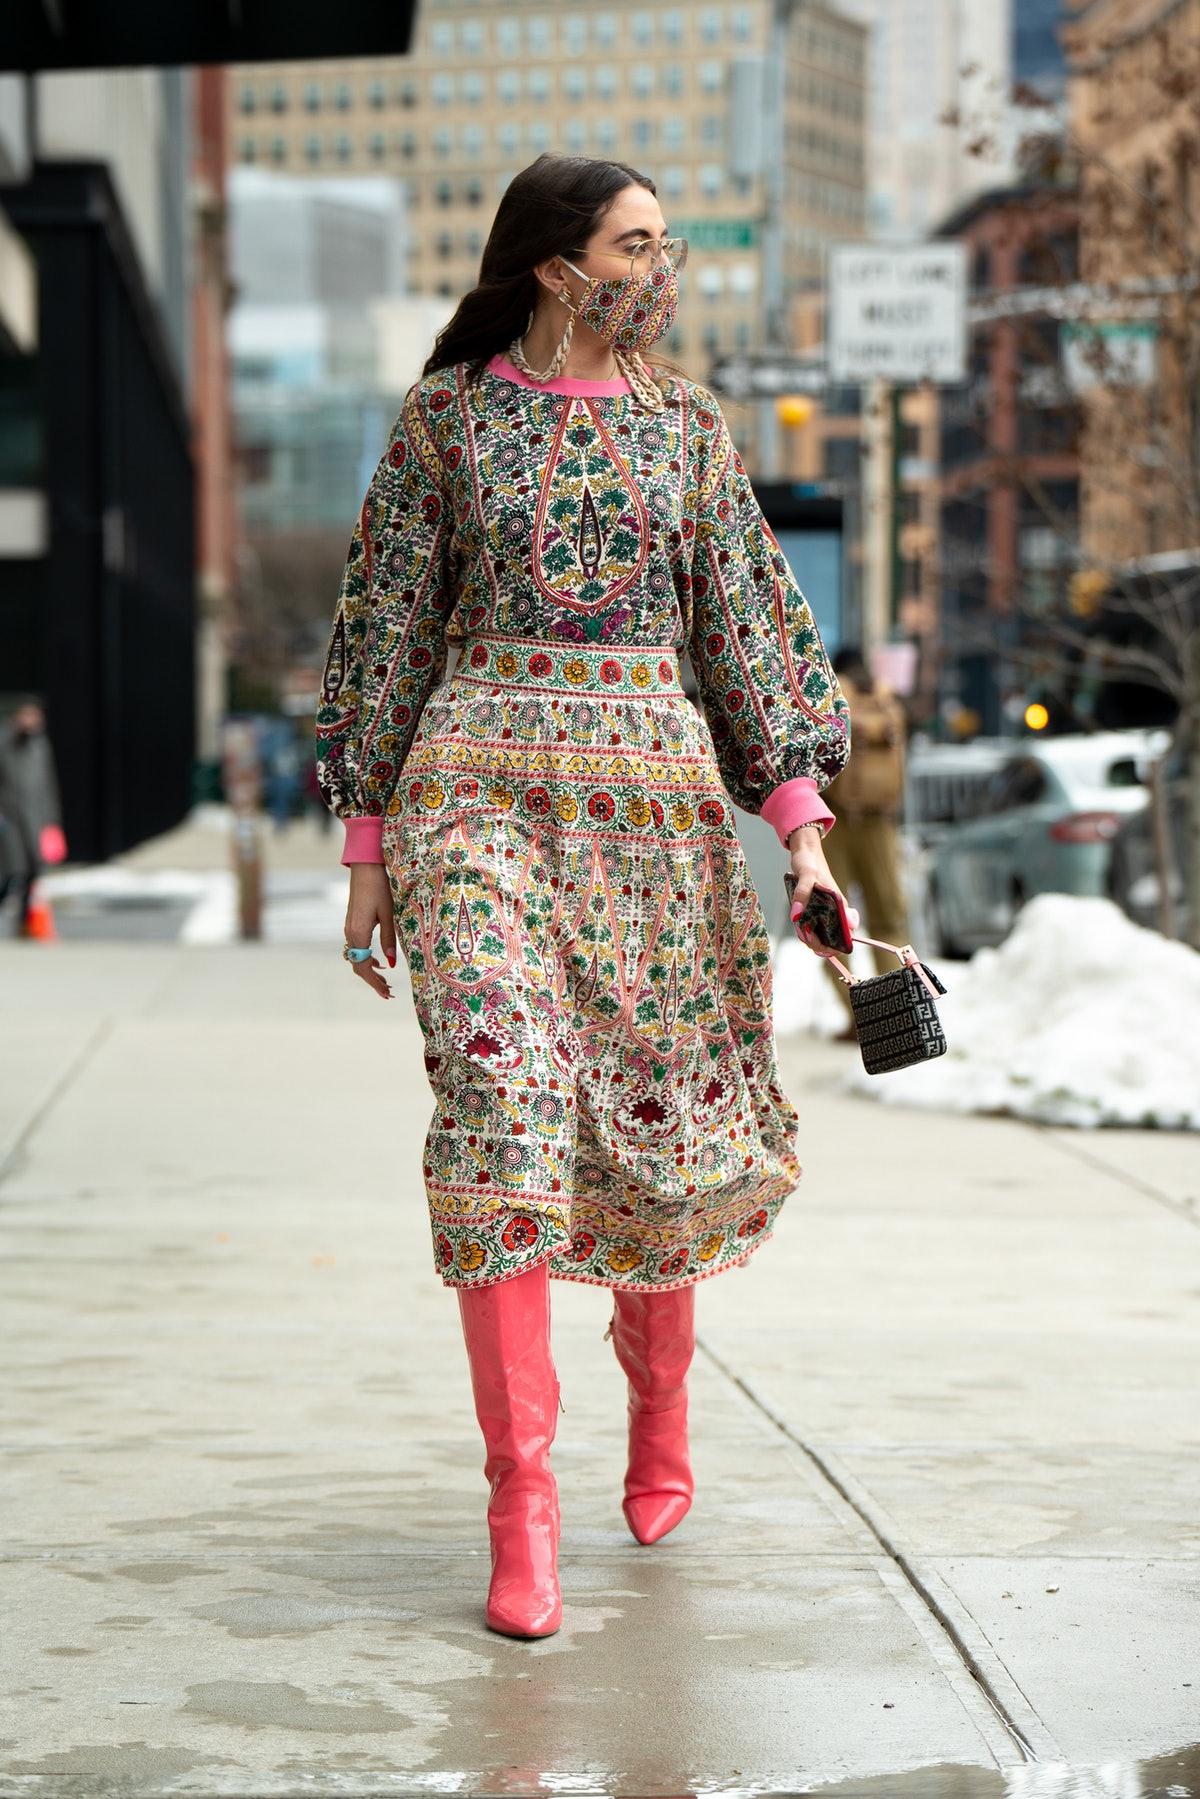 A printed dress with colorful tall boots.